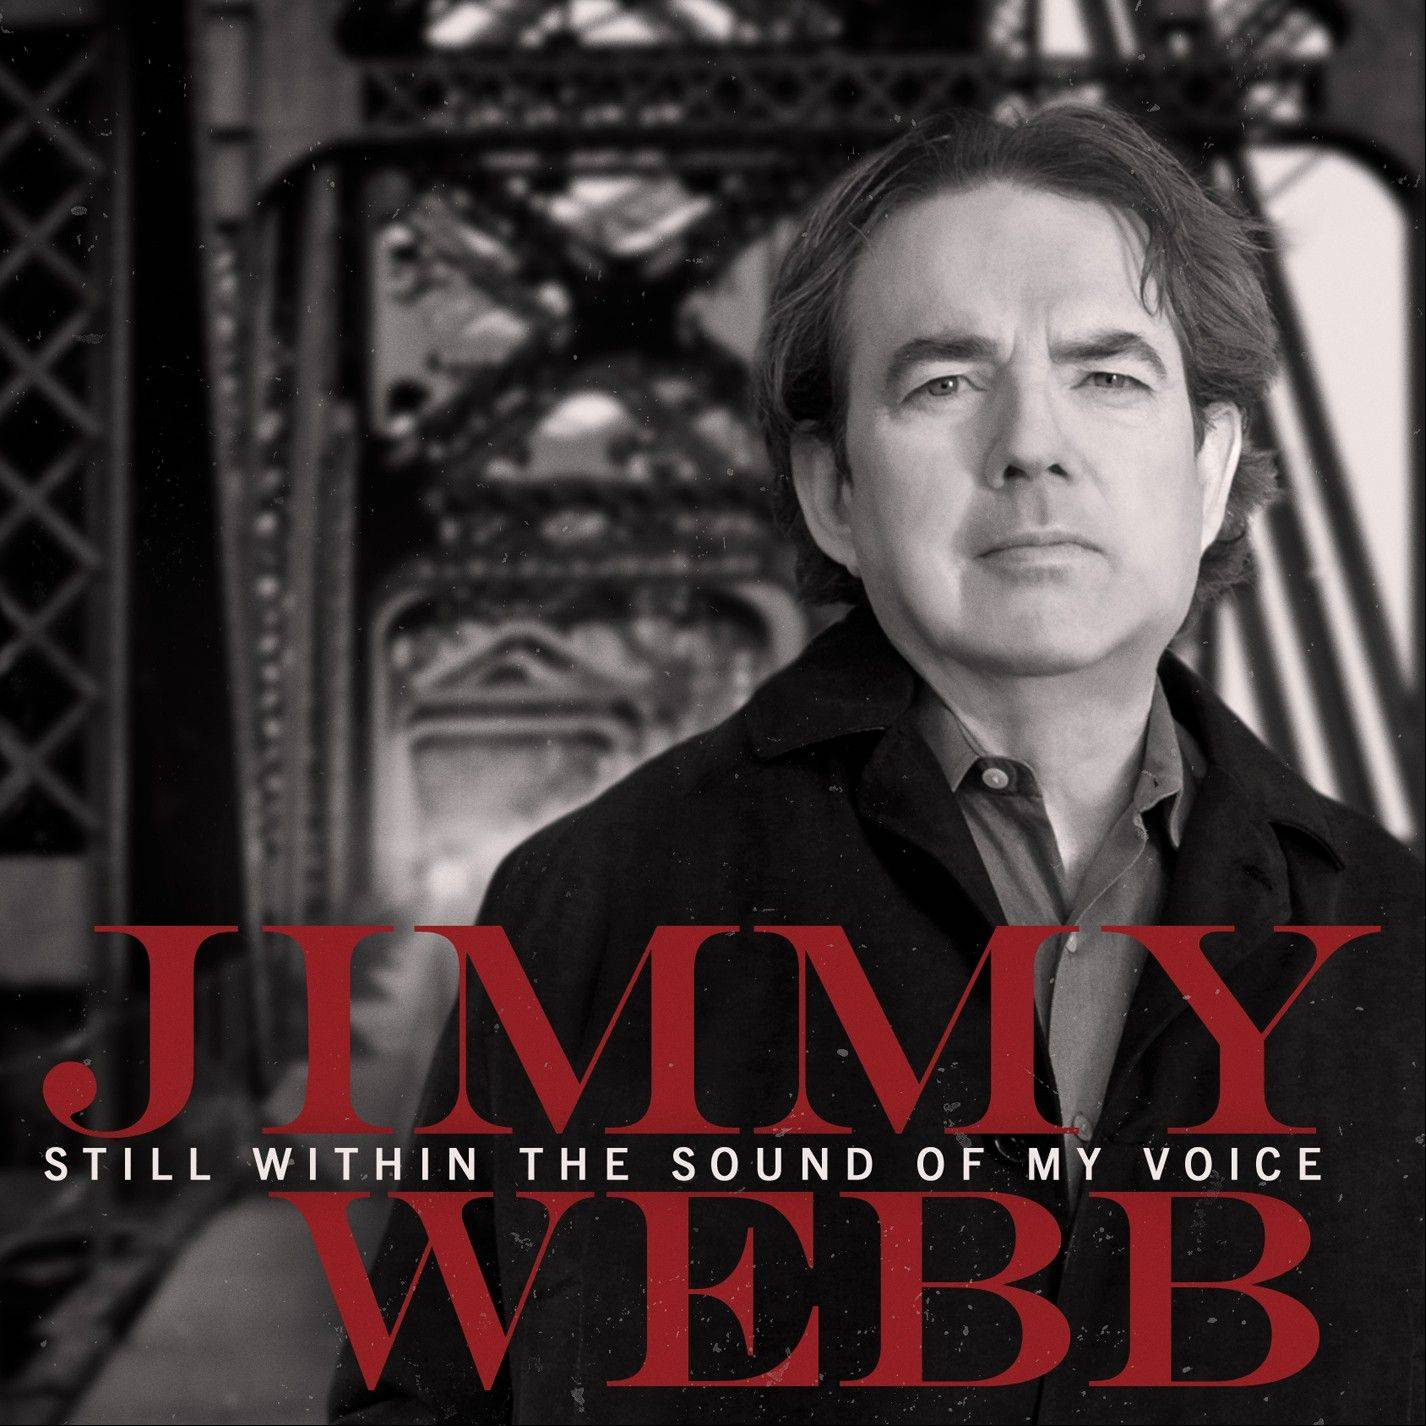 """Still Within the Sound of My Voice"" by Jimmy Webb"